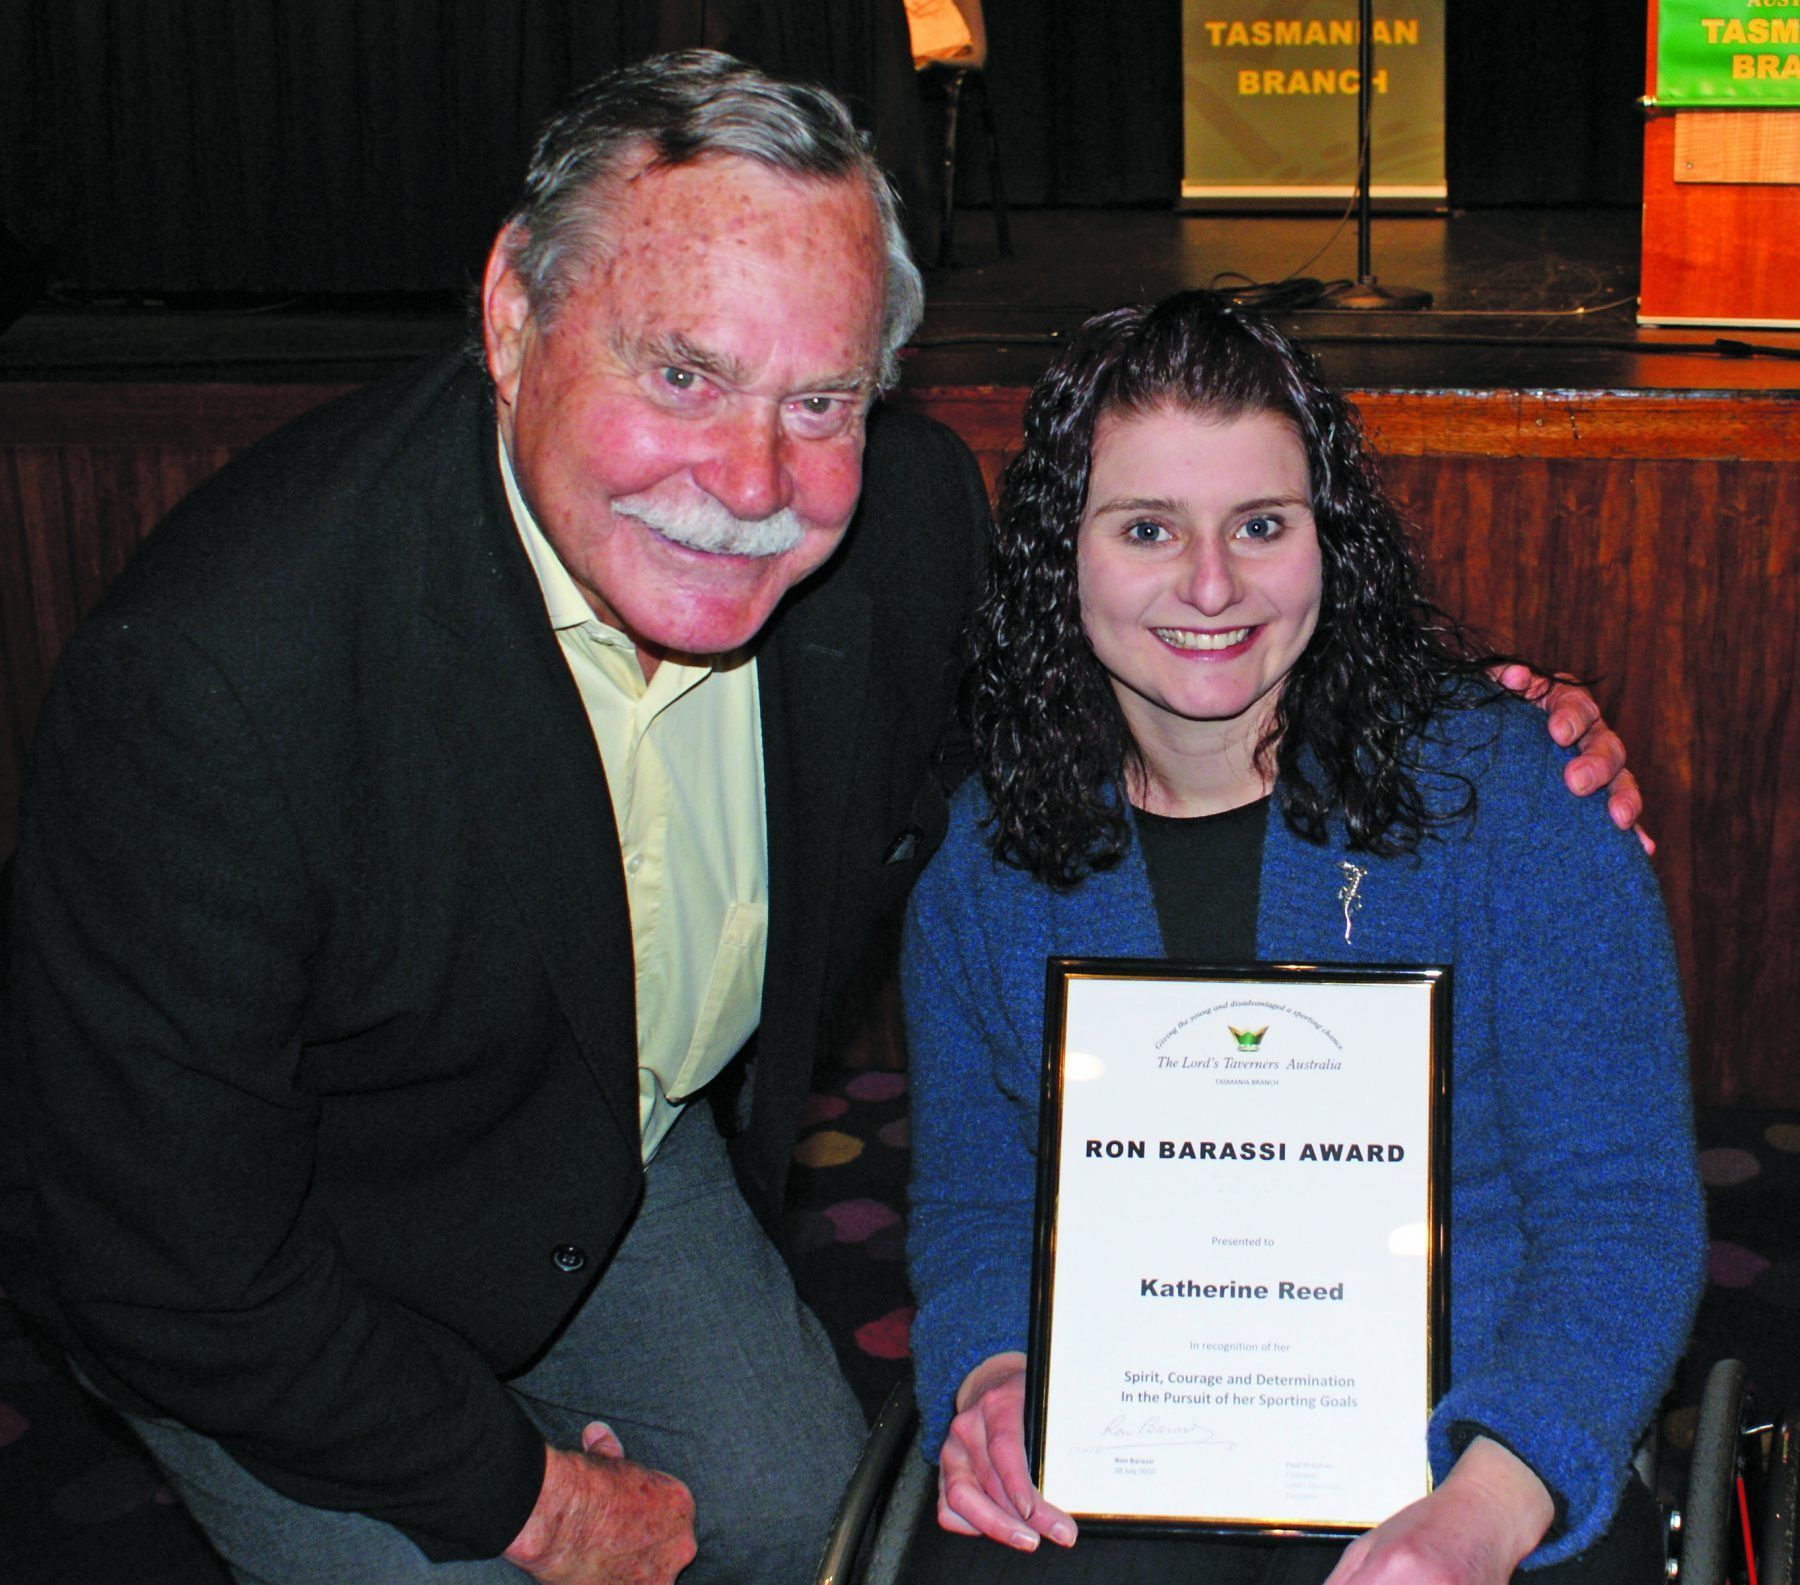 Ron Barassi Award Photo